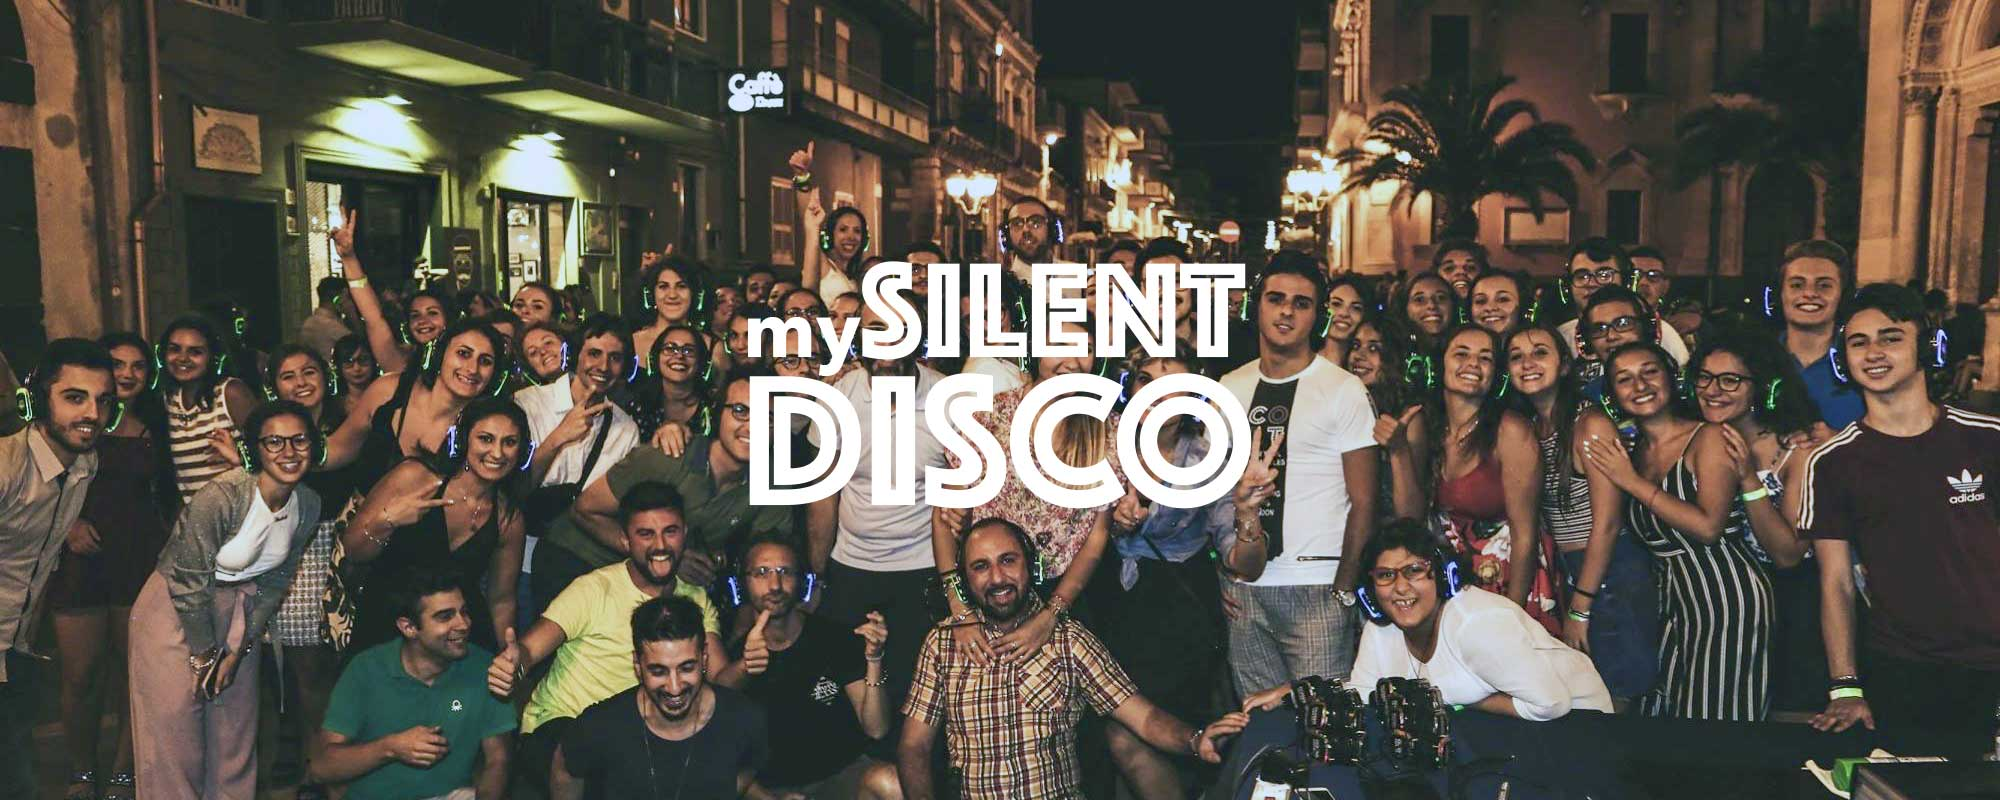 Outdoor silent disco event in Italy